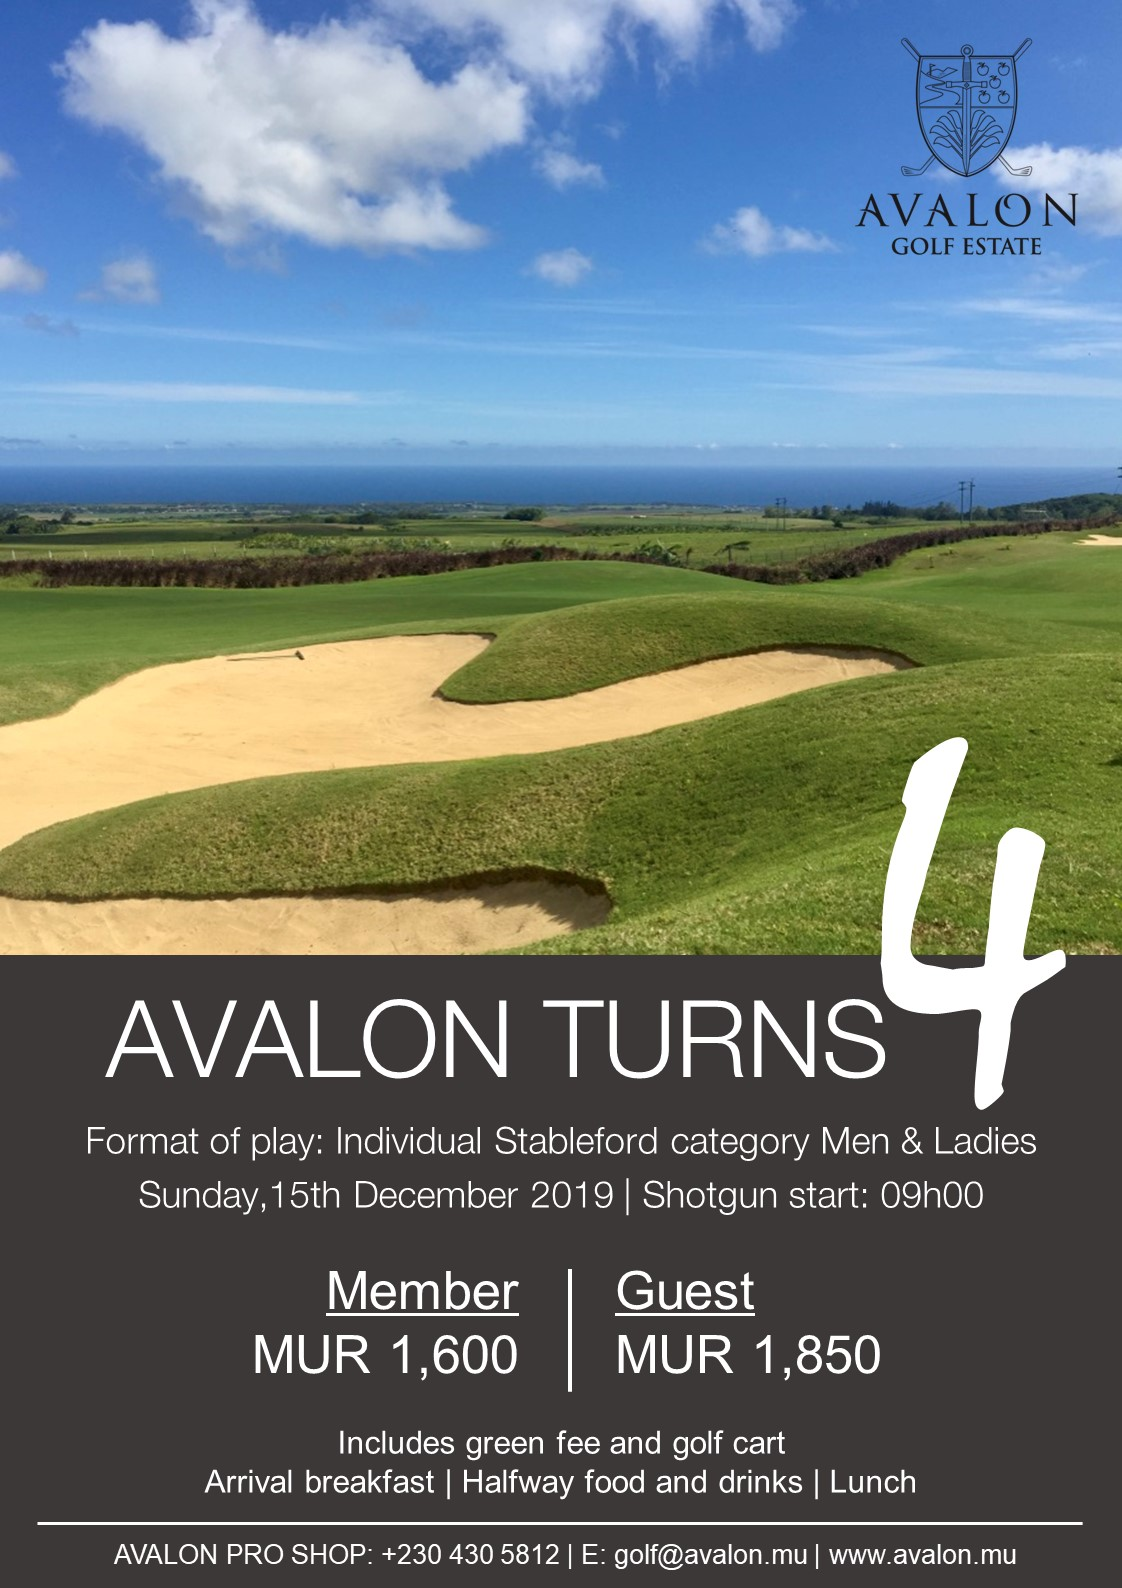 Avalon turns 4